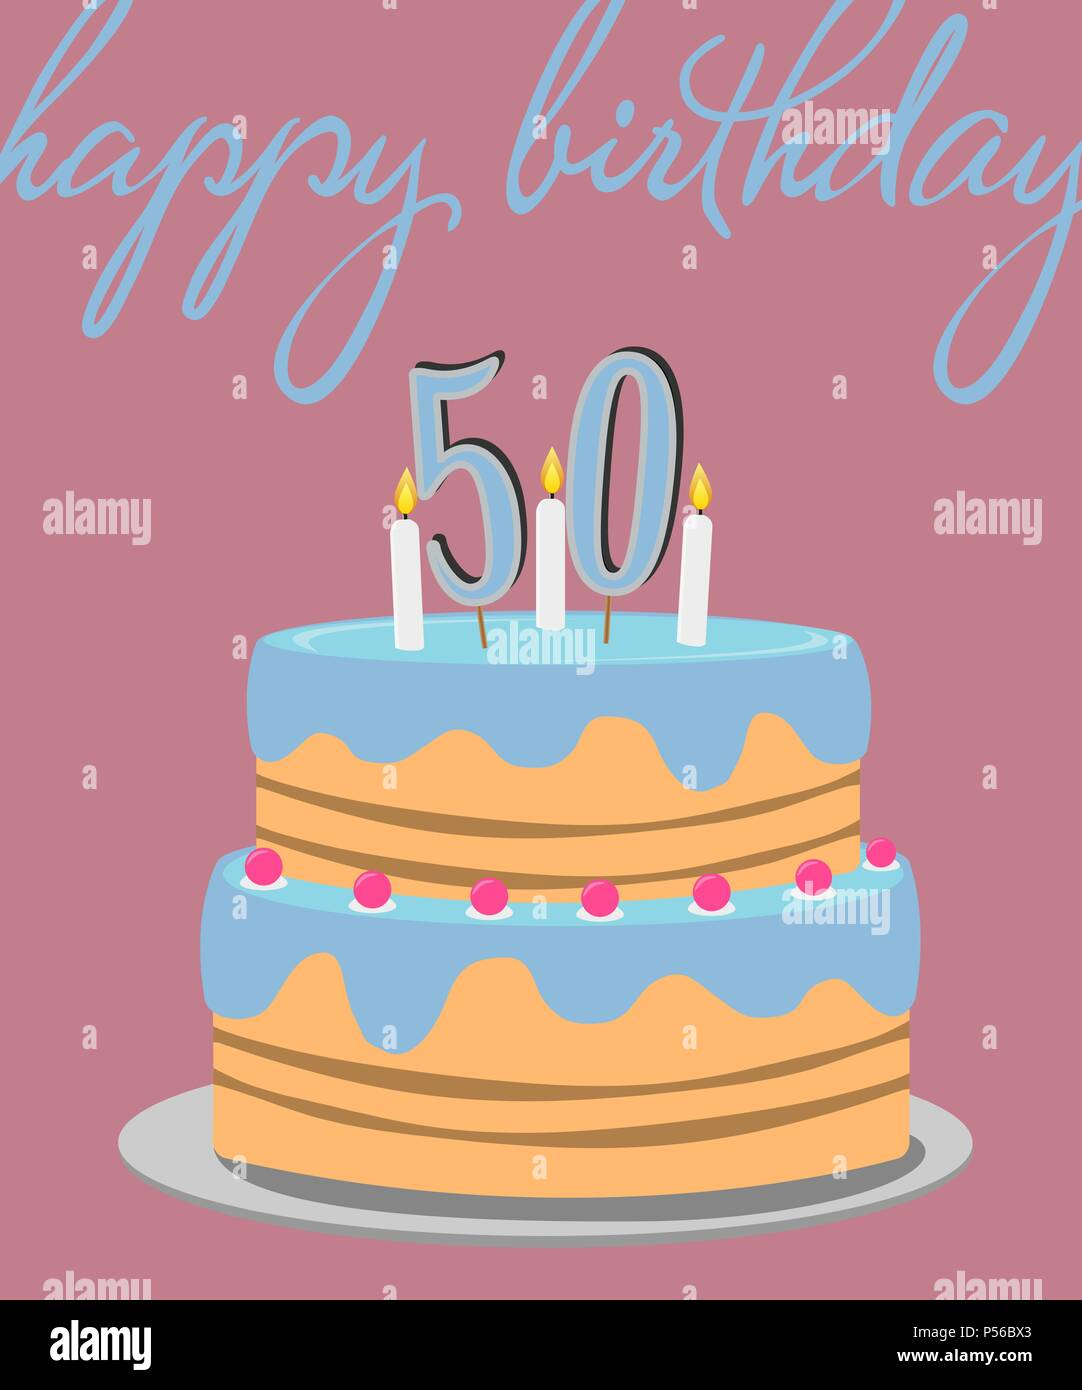 Happy 50th birthday greeting card with birthday cake illustration happy 50th birthday greeting card with birthday cake illustration m4hsunfo